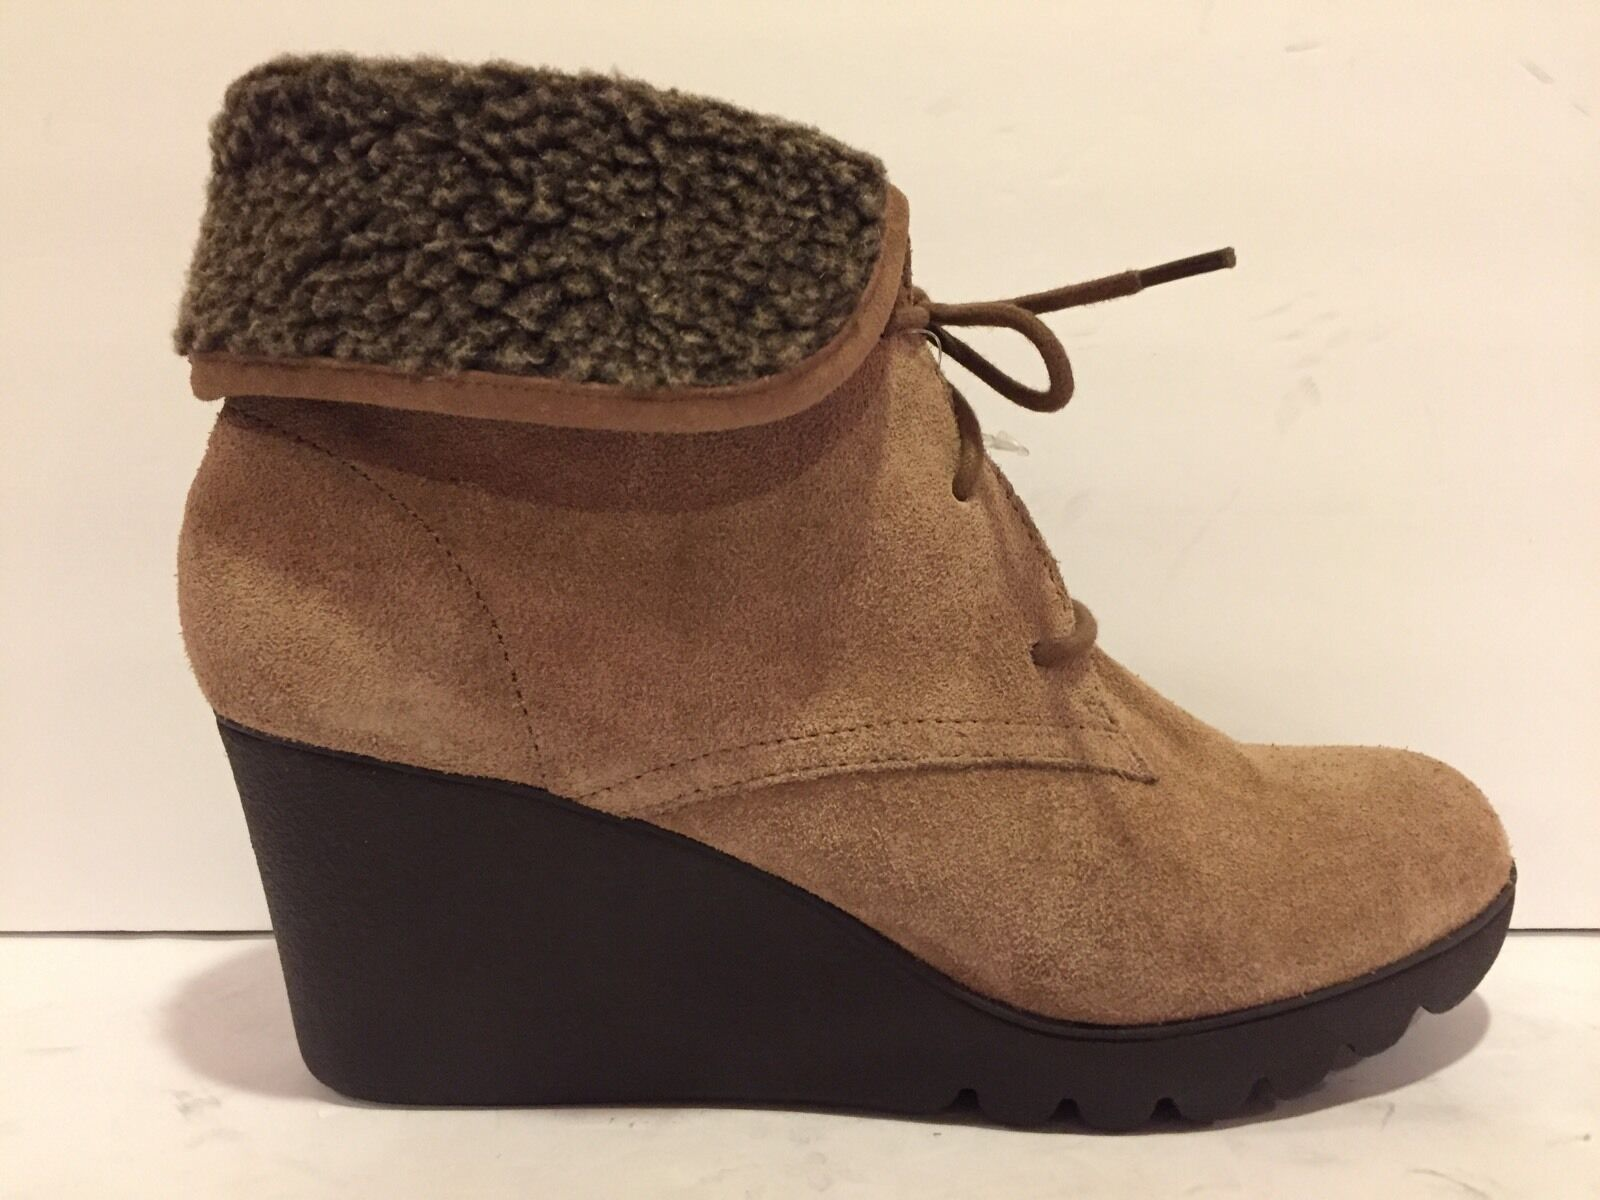 Donald J Pliner Maxxi Ankle Boots Boots Boots Wedge Lace Up Fur Light Brown 8.5 M  258 New 3f5555